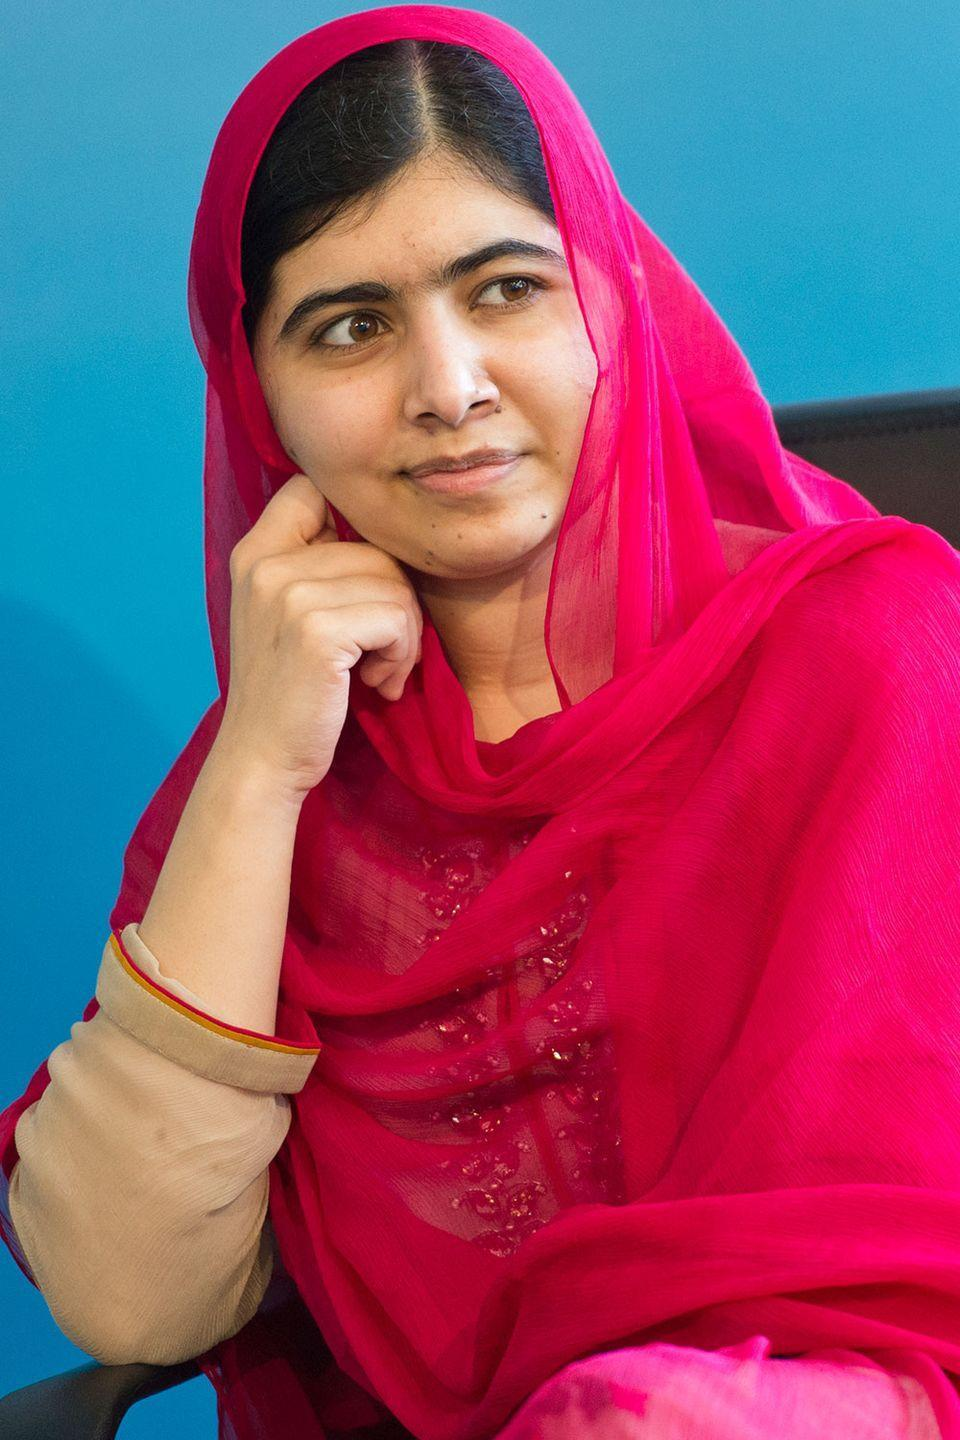 """<p>At 17, Yousafzai became the youngest Nobel Prize laureate for her humanitarian efforts. She captured the world's attention after being shot by the Taliban in Pakistan on her way to school because she was an advocate for women pursuing education. She is currently working towards her bachelor's degree at Oxford's Lady Margaret Hall while continuing her charity work through her organization, <a href=""""https://www.malala.org/"""" rel=""""nofollow noopener"""" target=""""_blank"""" data-ylk=""""slk:The Malala Fund"""" class=""""link rapid-noclick-resp"""">The Malala Fund</a>.</p>"""